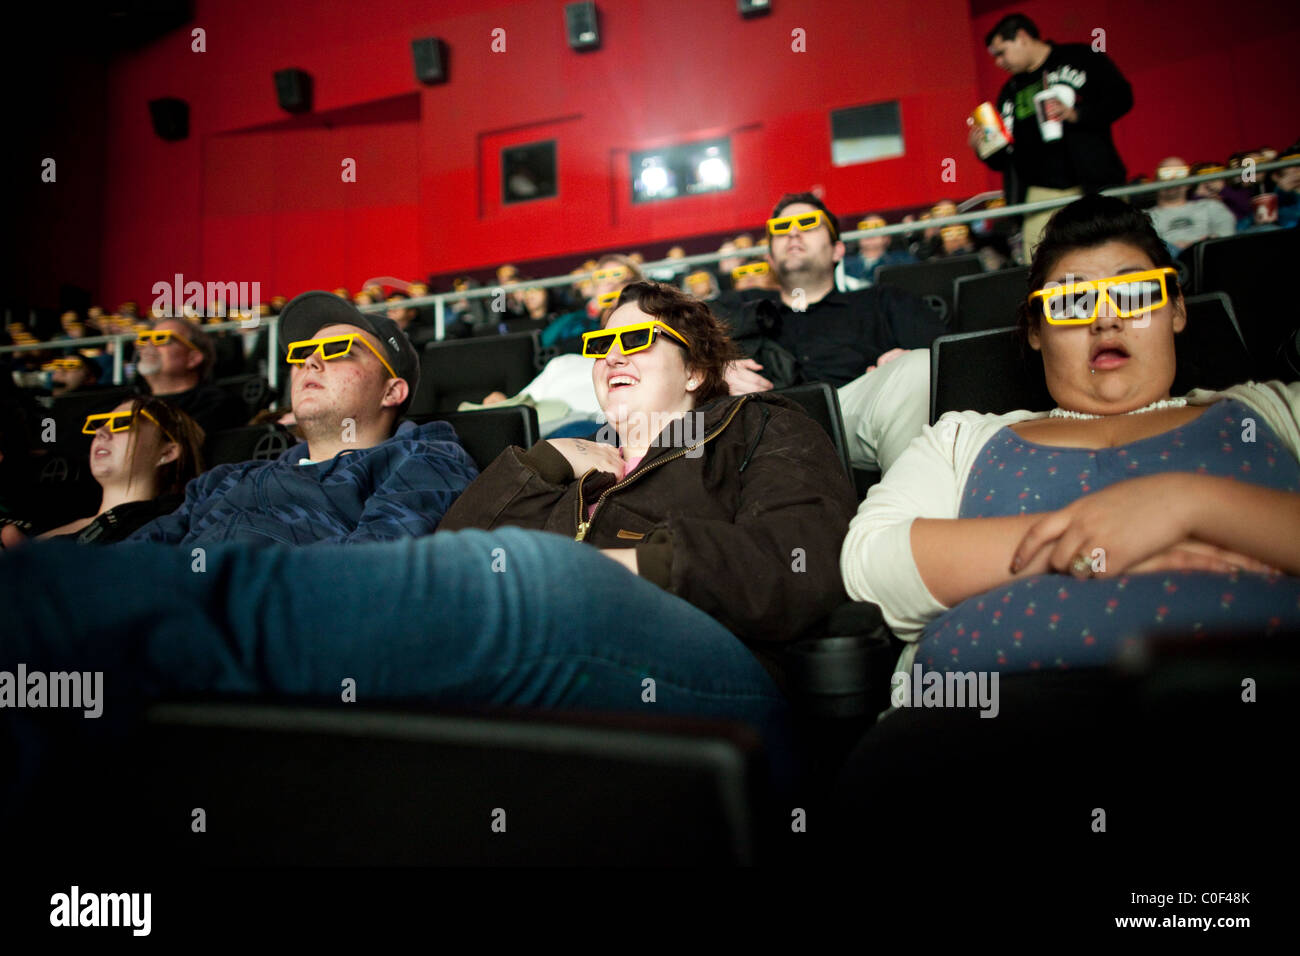 Edwards Fresno Stadium 22 & IMAX, Fresno, California, United States.  Obese teenagers watch the IMAX version - Stock Image